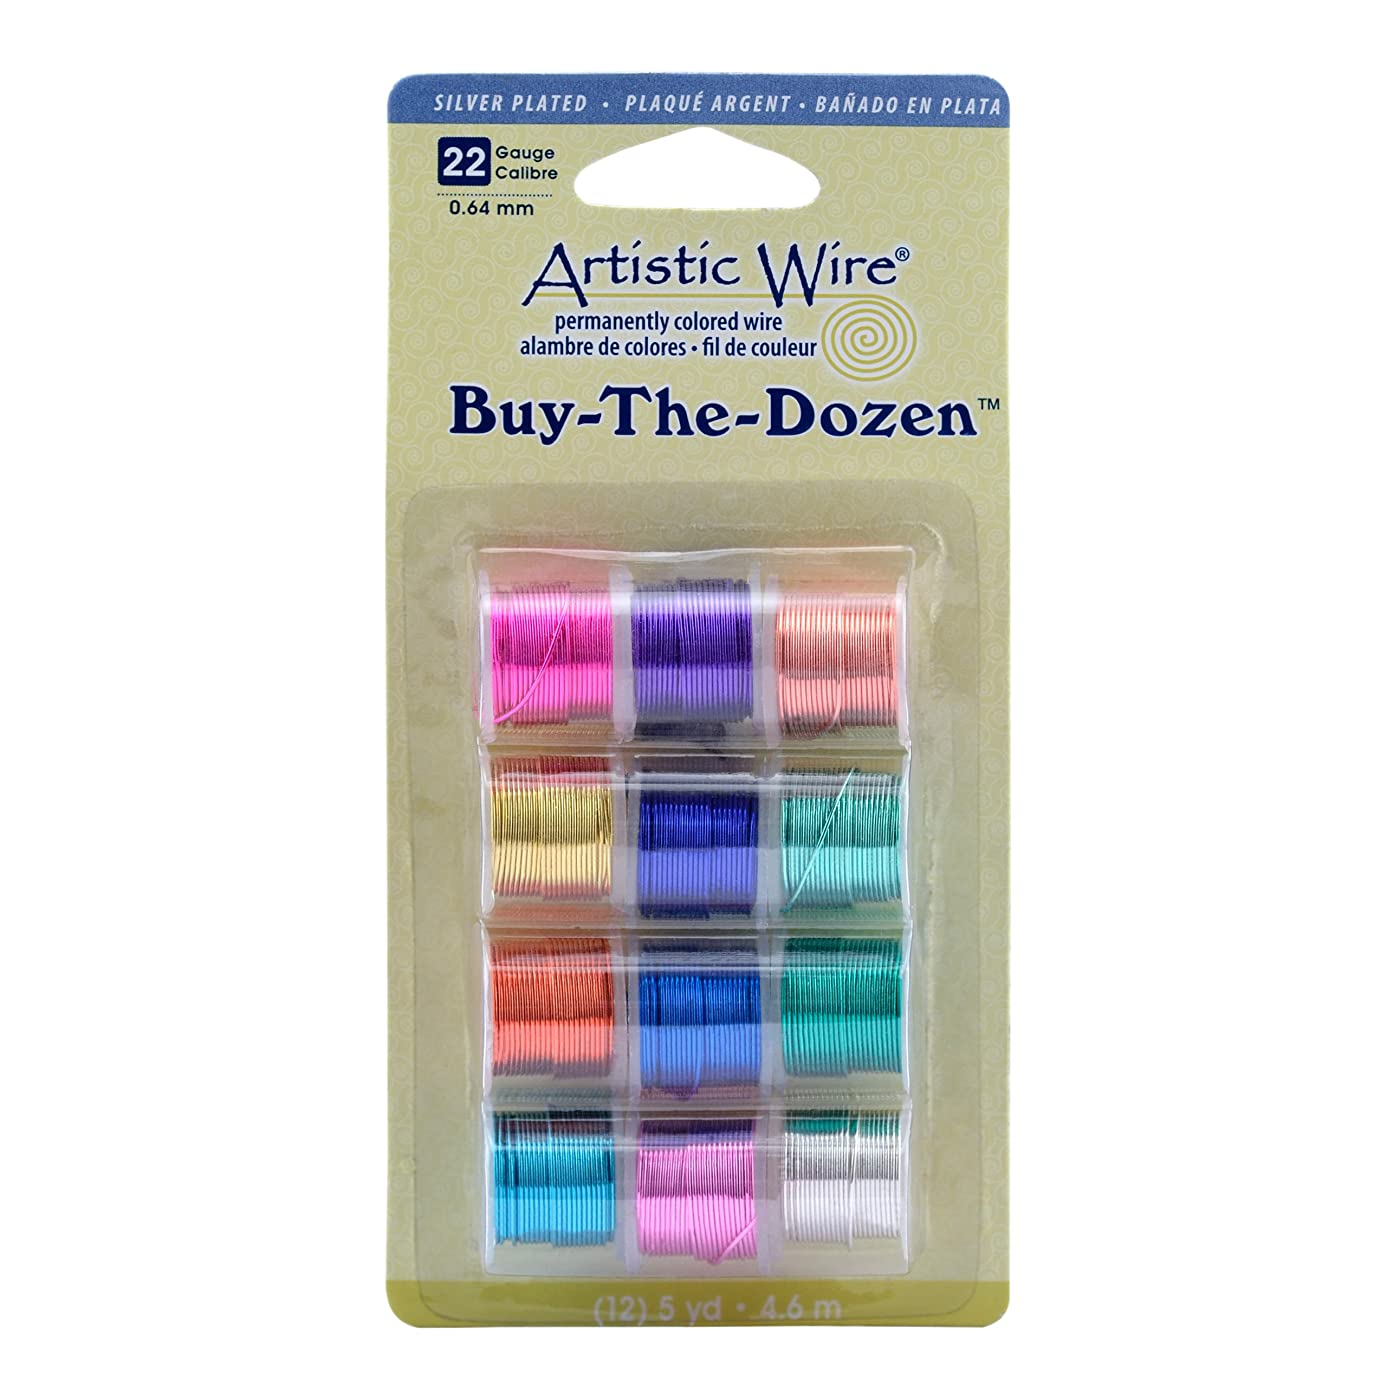 Artistic Wire 22-Gauge Silver Plated Buy-The-Dozen Wire